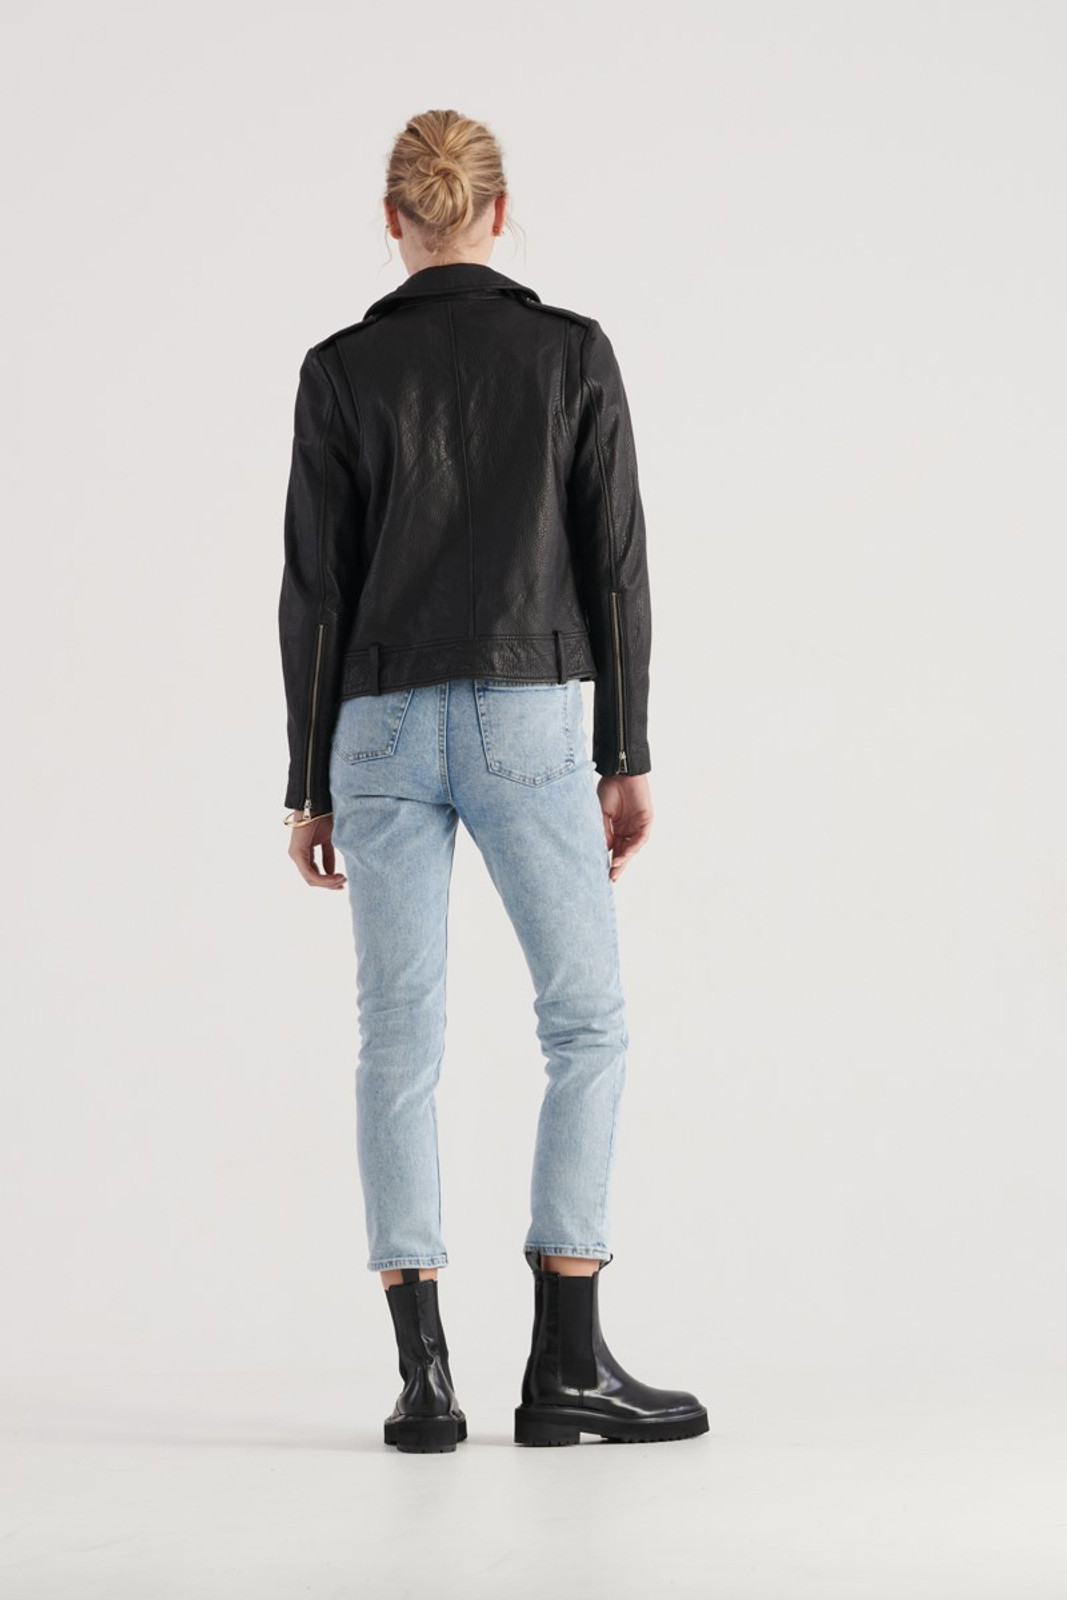 Elka Collective WOMENS Black Carrie Leather Jacket 3